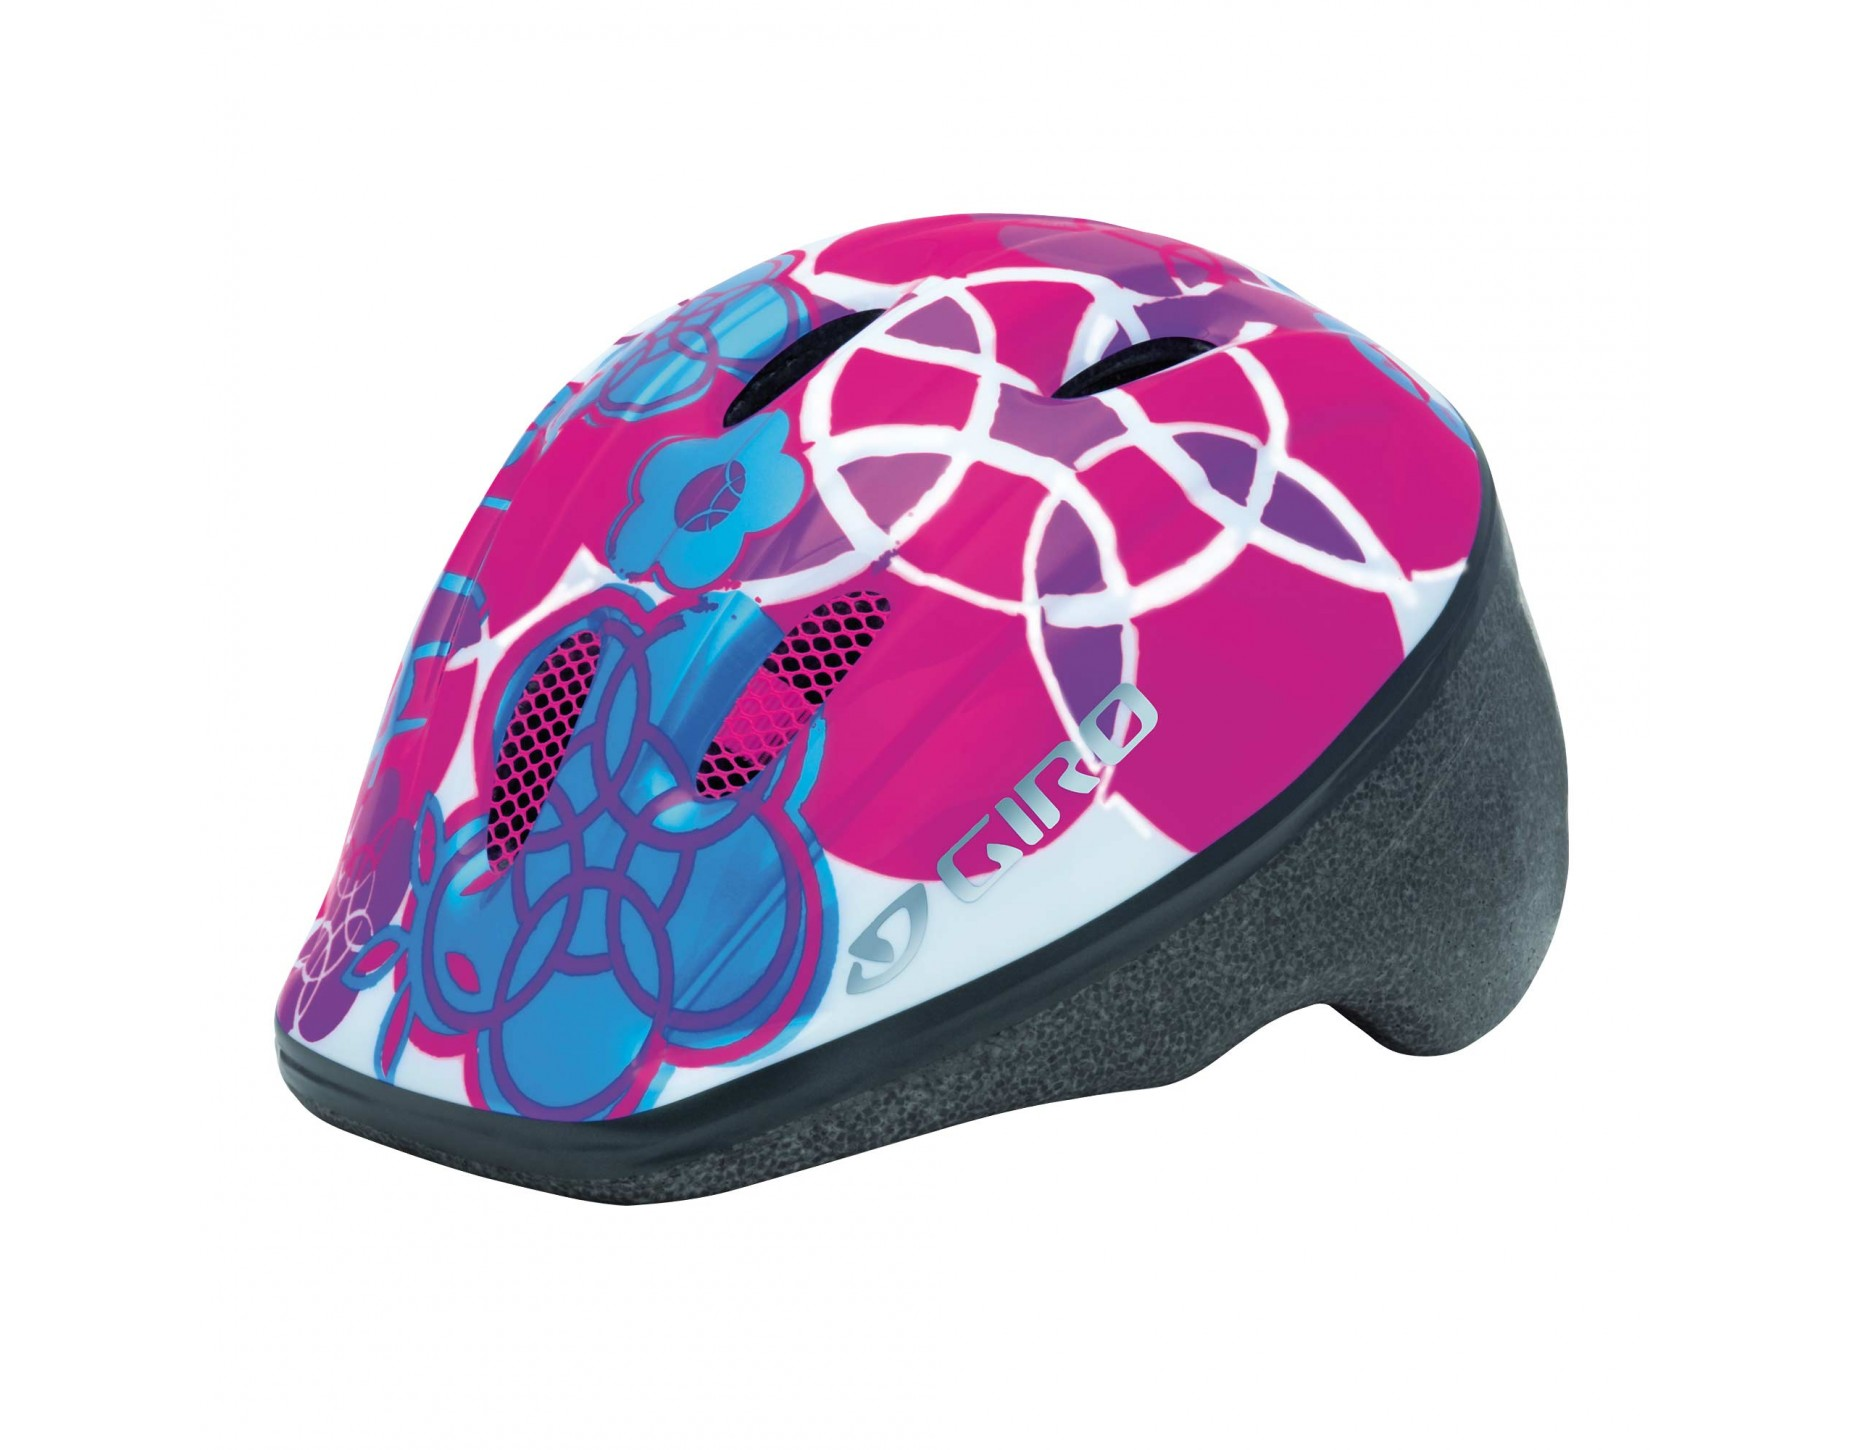 GIRO kinderhelm ME 2 white pink elements